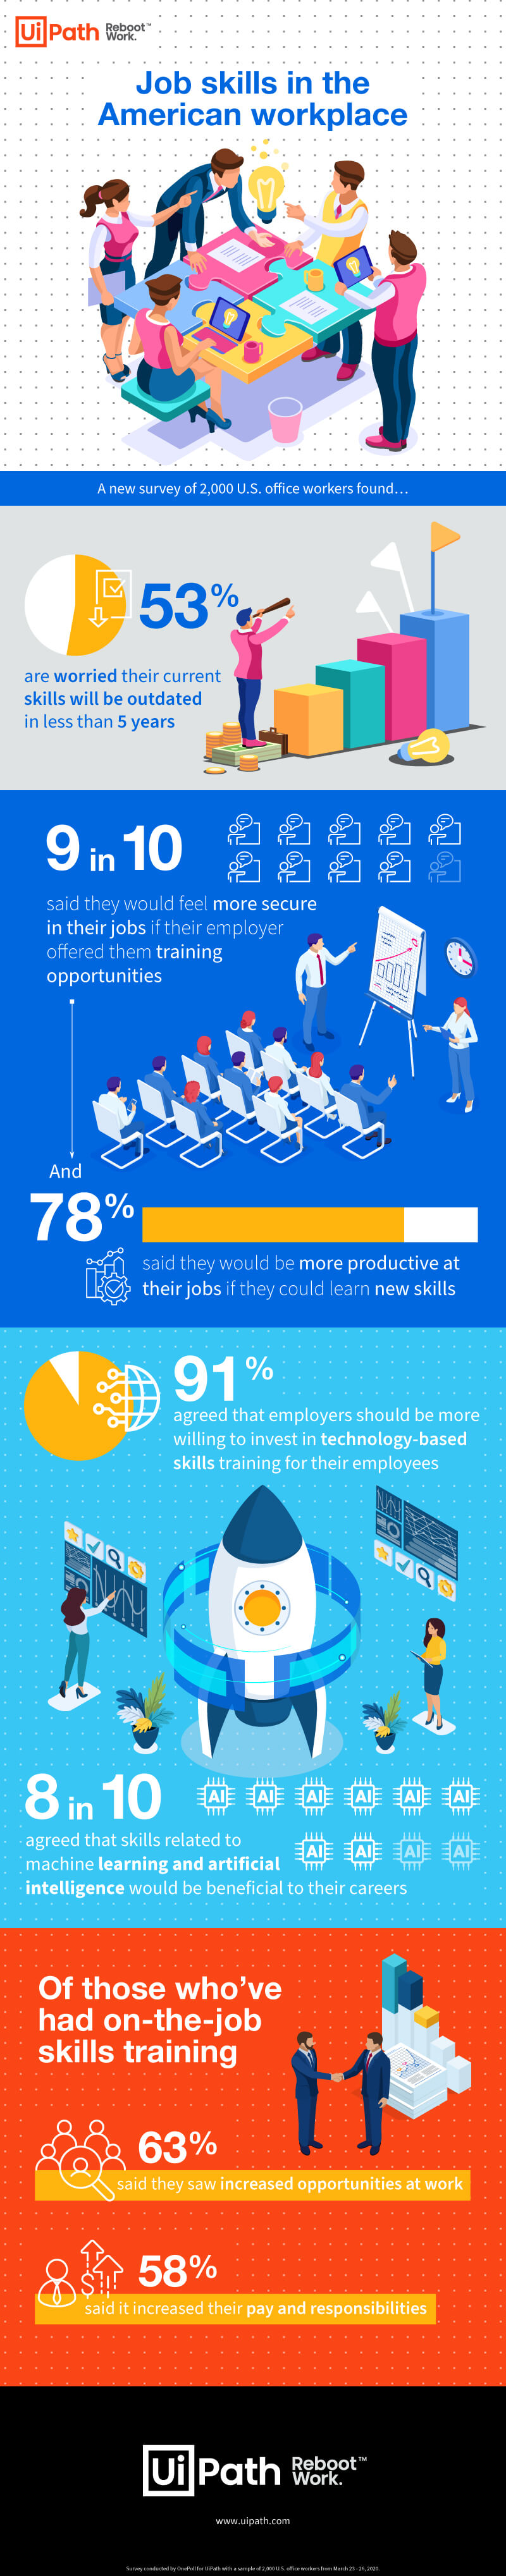 New Research Shows Worker Concerns About Skills Gap